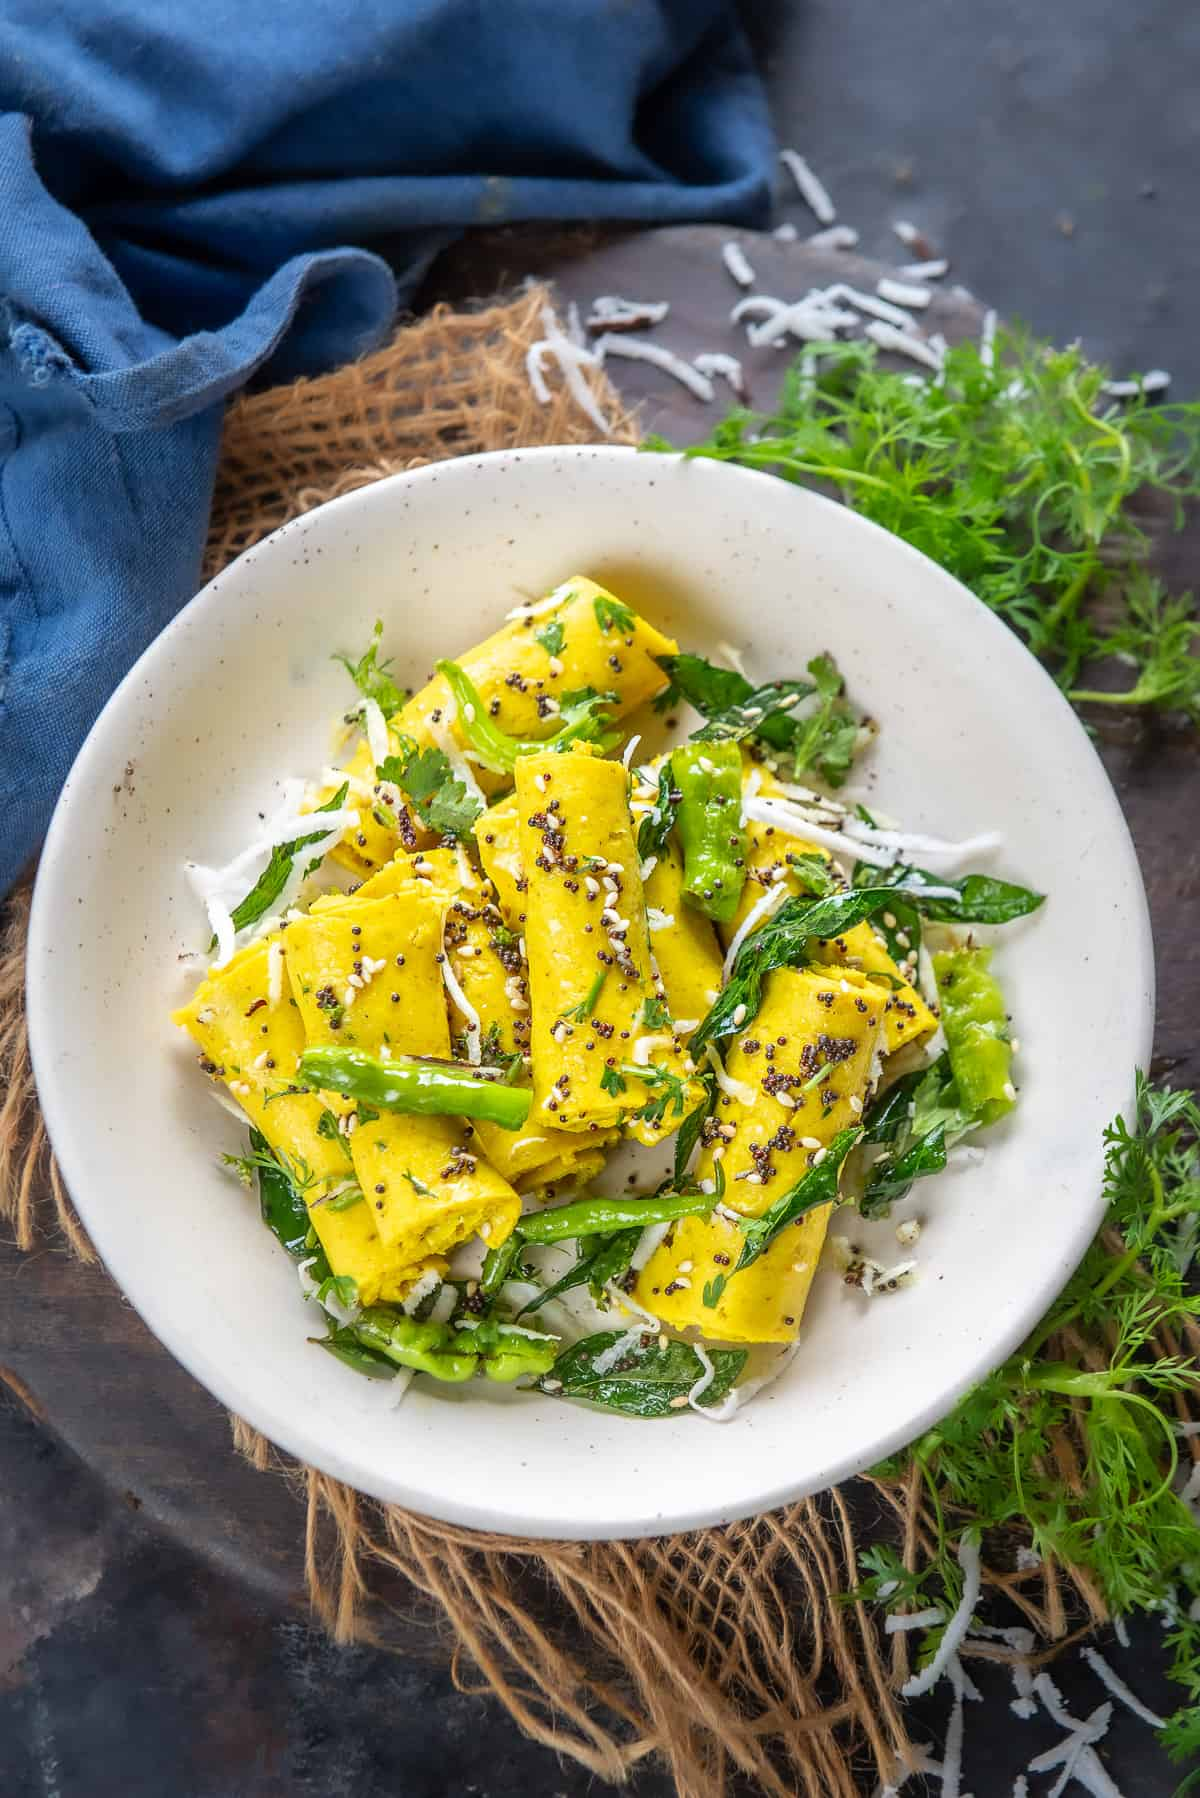 Khandvi served on a plate.